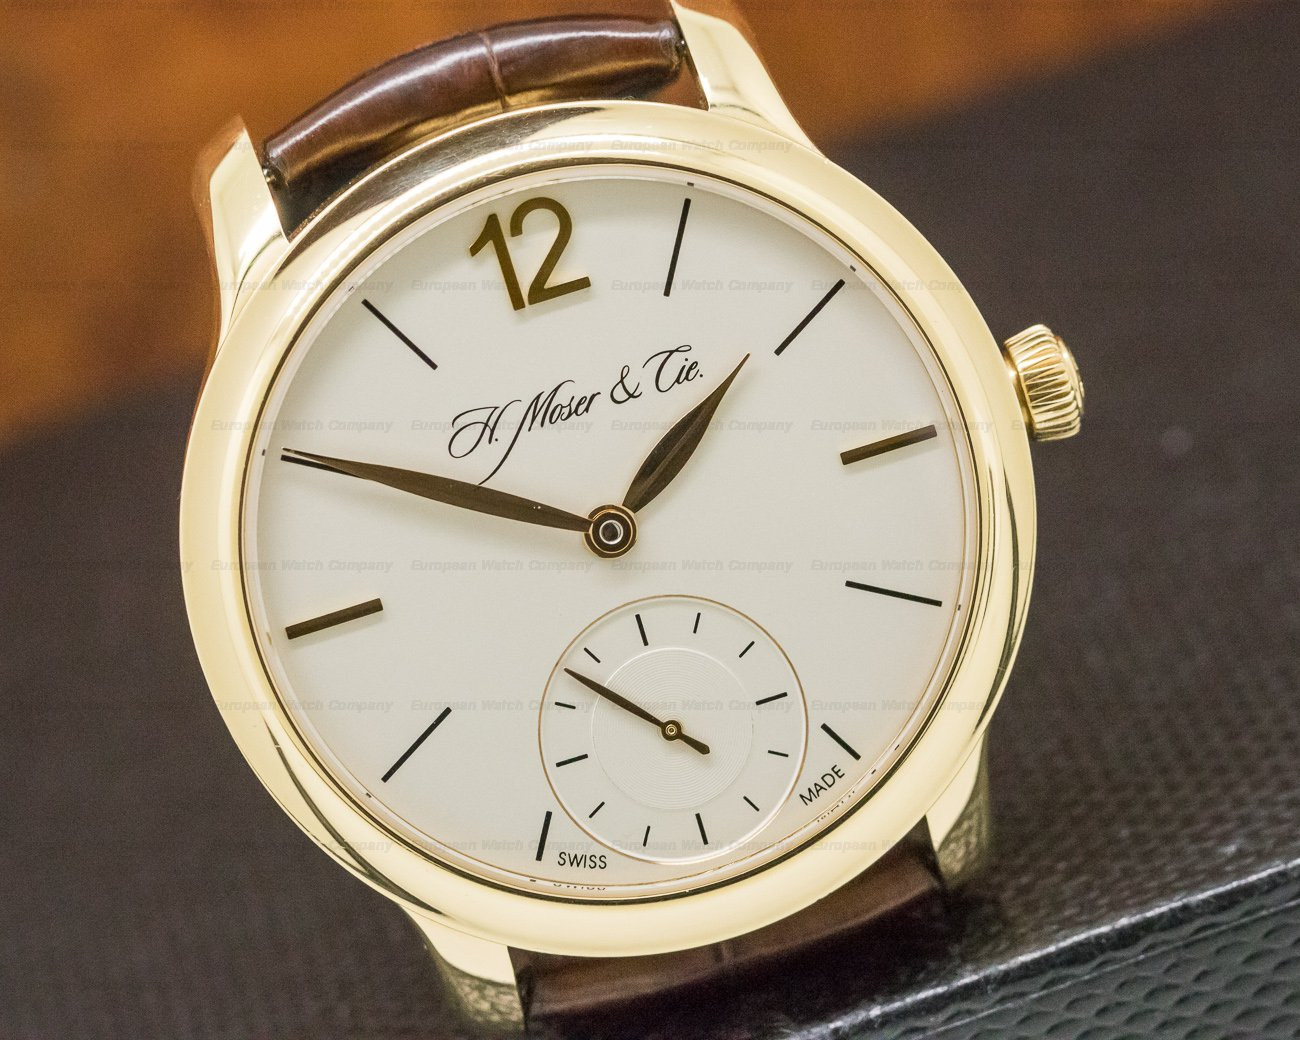 H. Moser & Cie 321.503 Endeavour MAYU 18K Yellow Gold